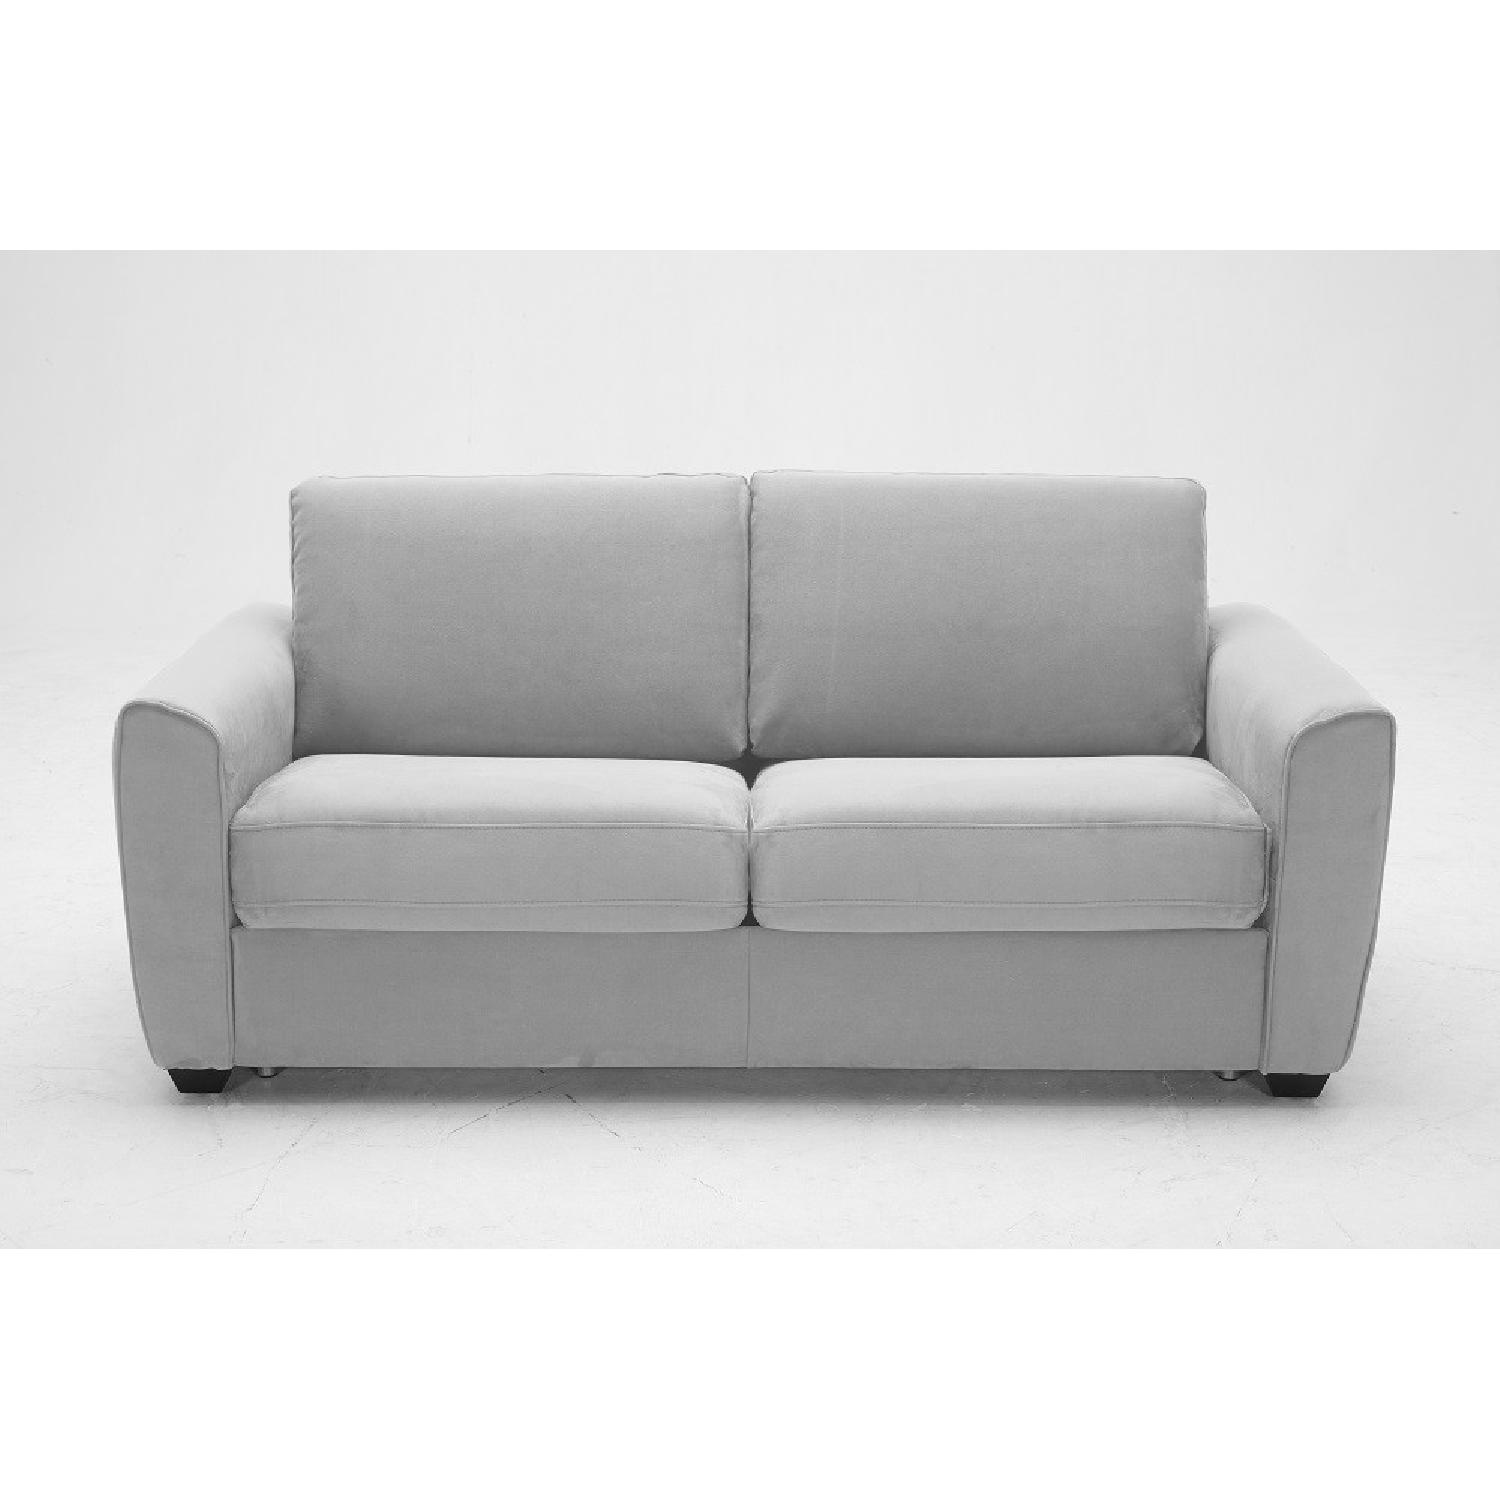 Prime Grey Microfiber Sofa Bed W Memory Foam Sleeper Aptdeco Gmtry Best Dining Table And Chair Ideas Images Gmtryco